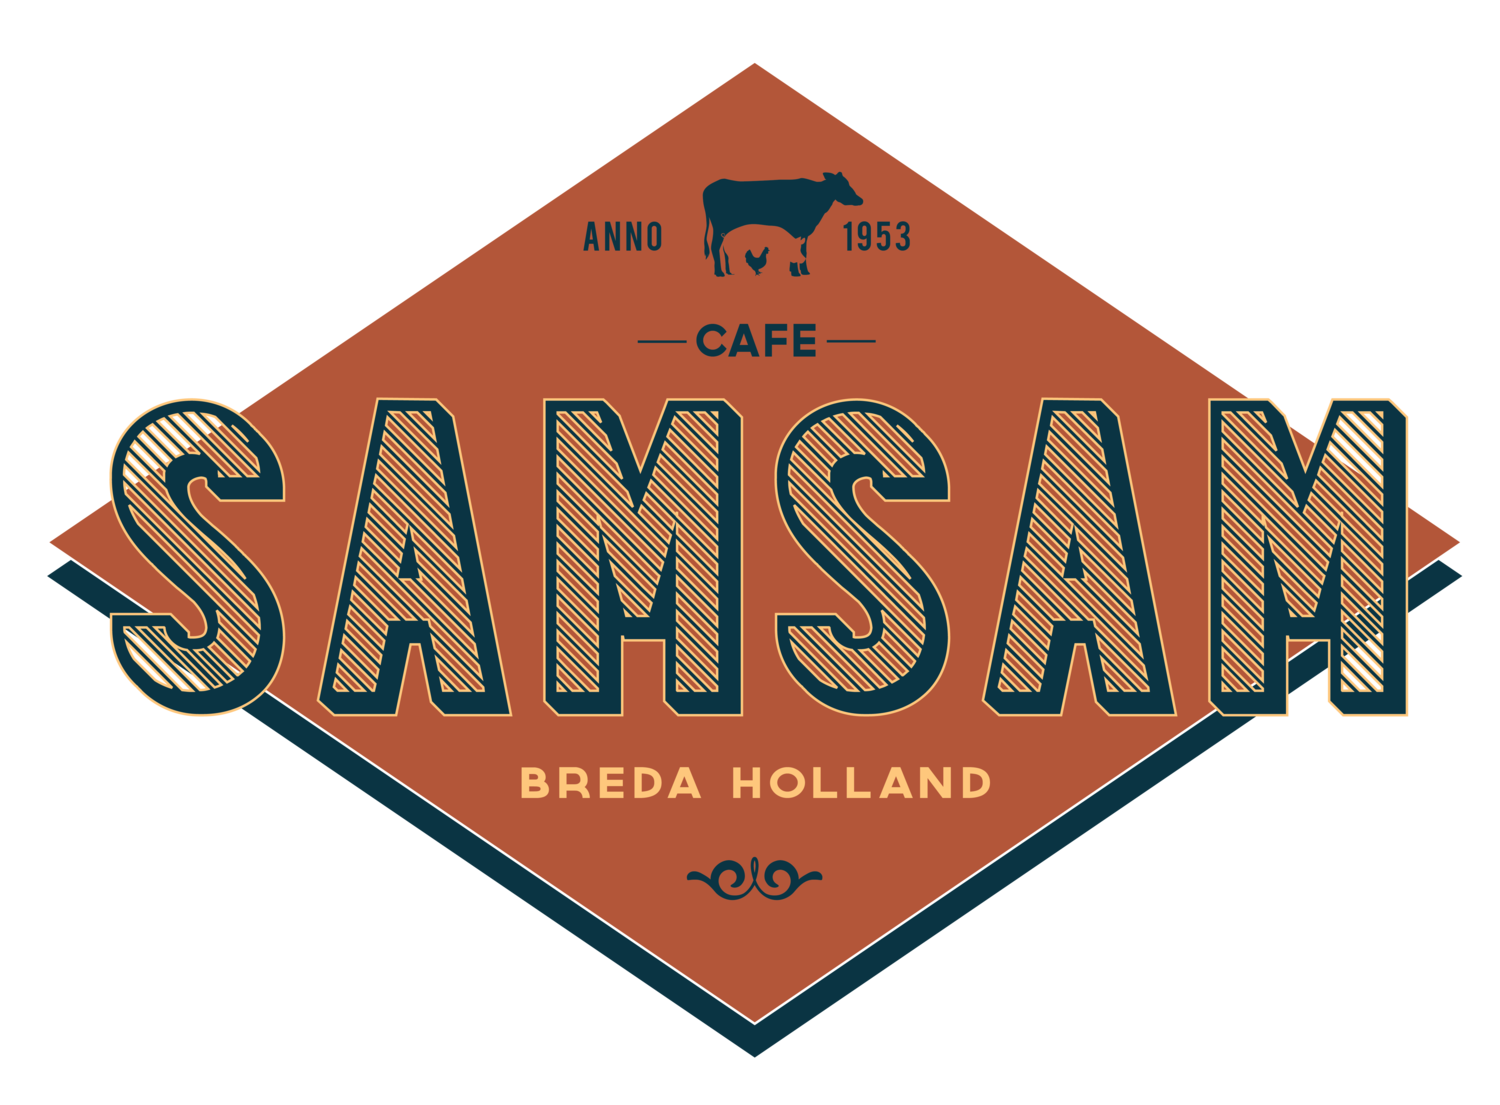 cafe samsam • breda holland